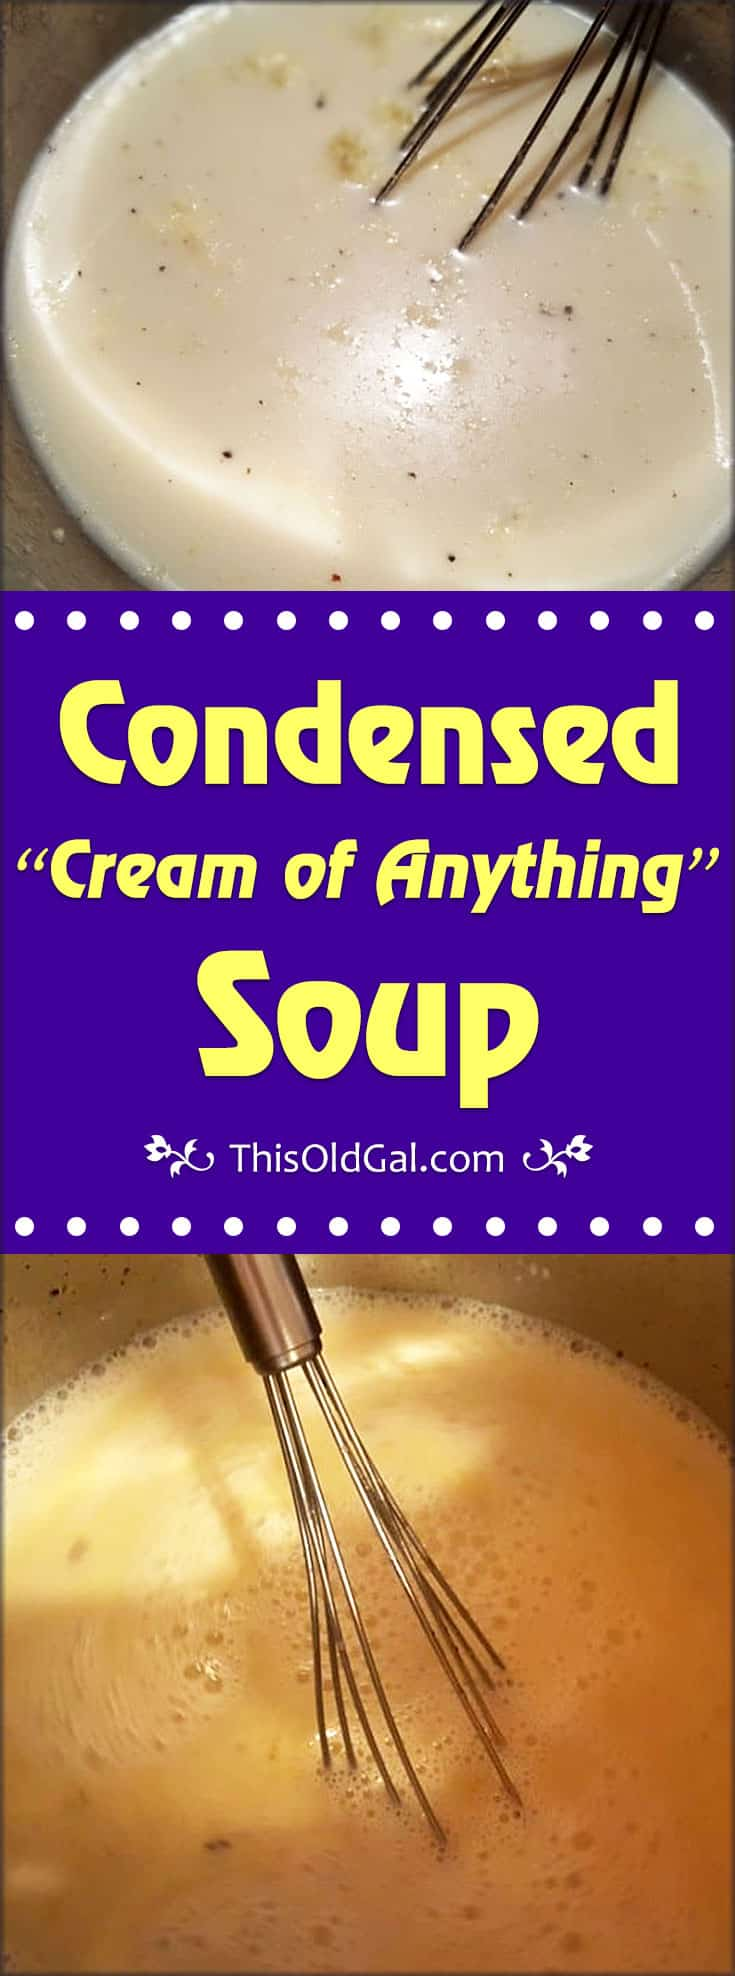 "Condensed ""Cream of Anything"" Soup"